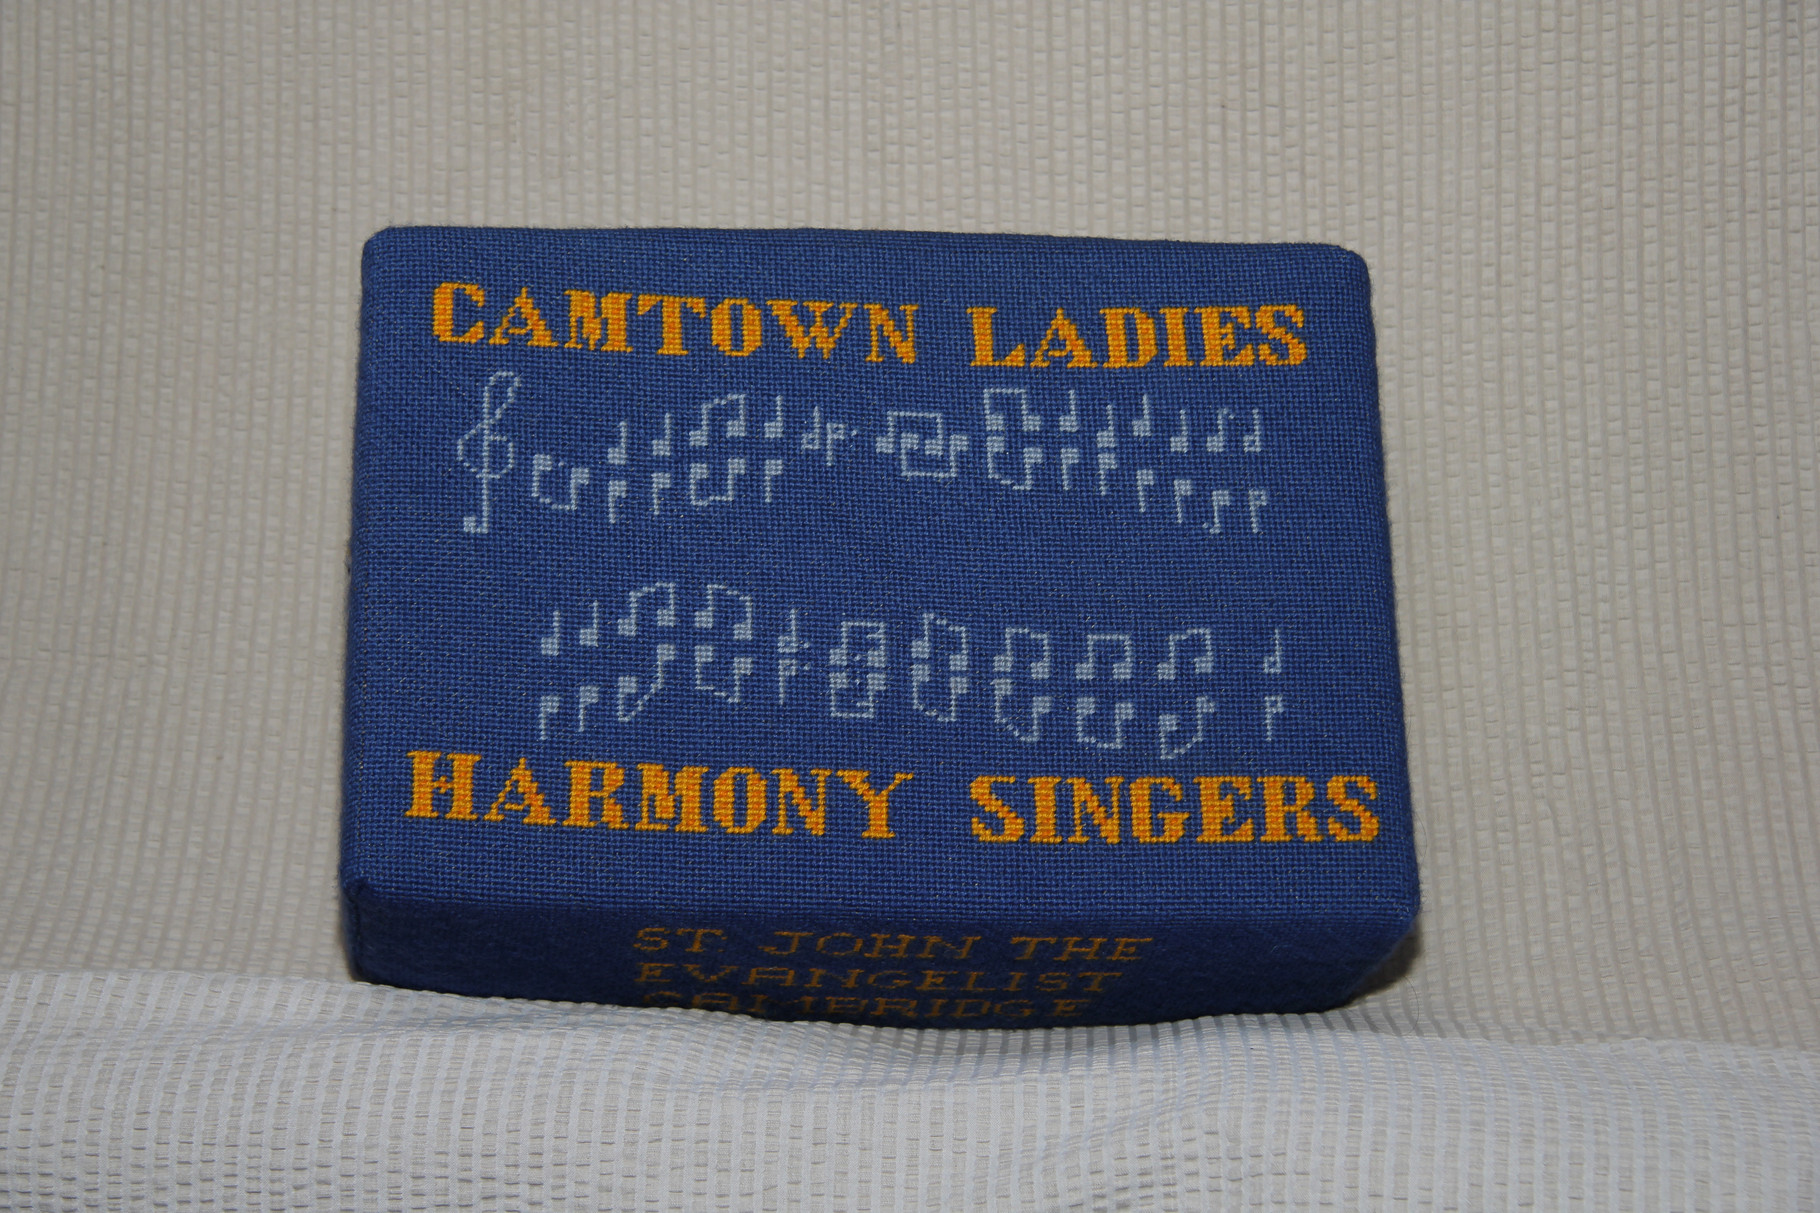 21. Camtown Ladies Harmony Singers – donated by them and worked by Beryl Johnson